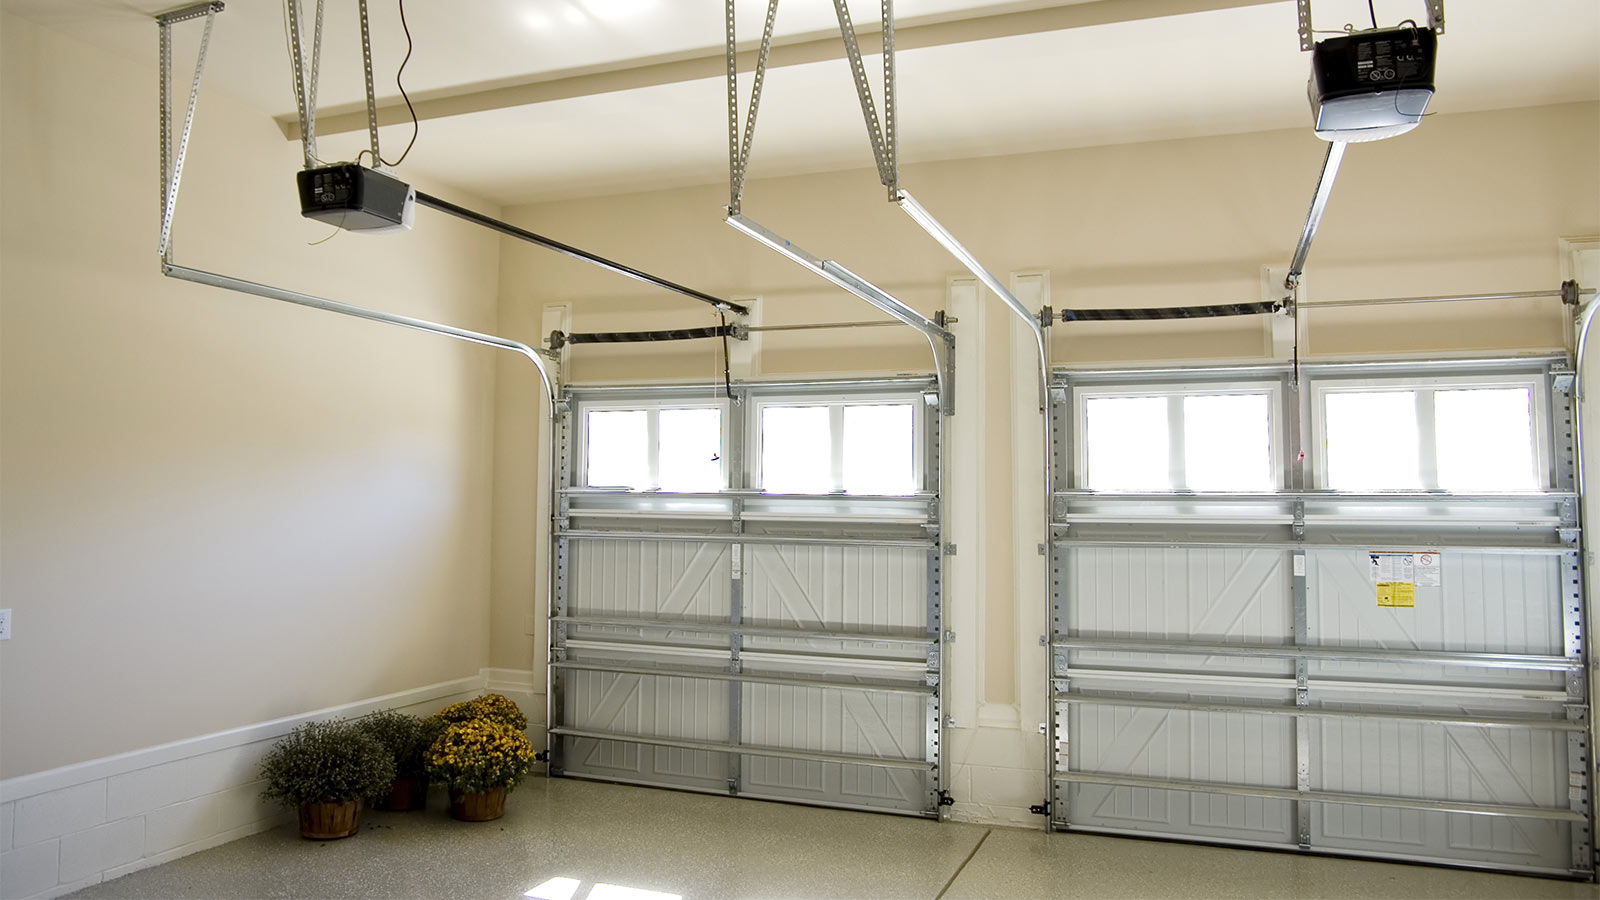 Sectional Garage Doors from Roller Shutters Woking suppliers.